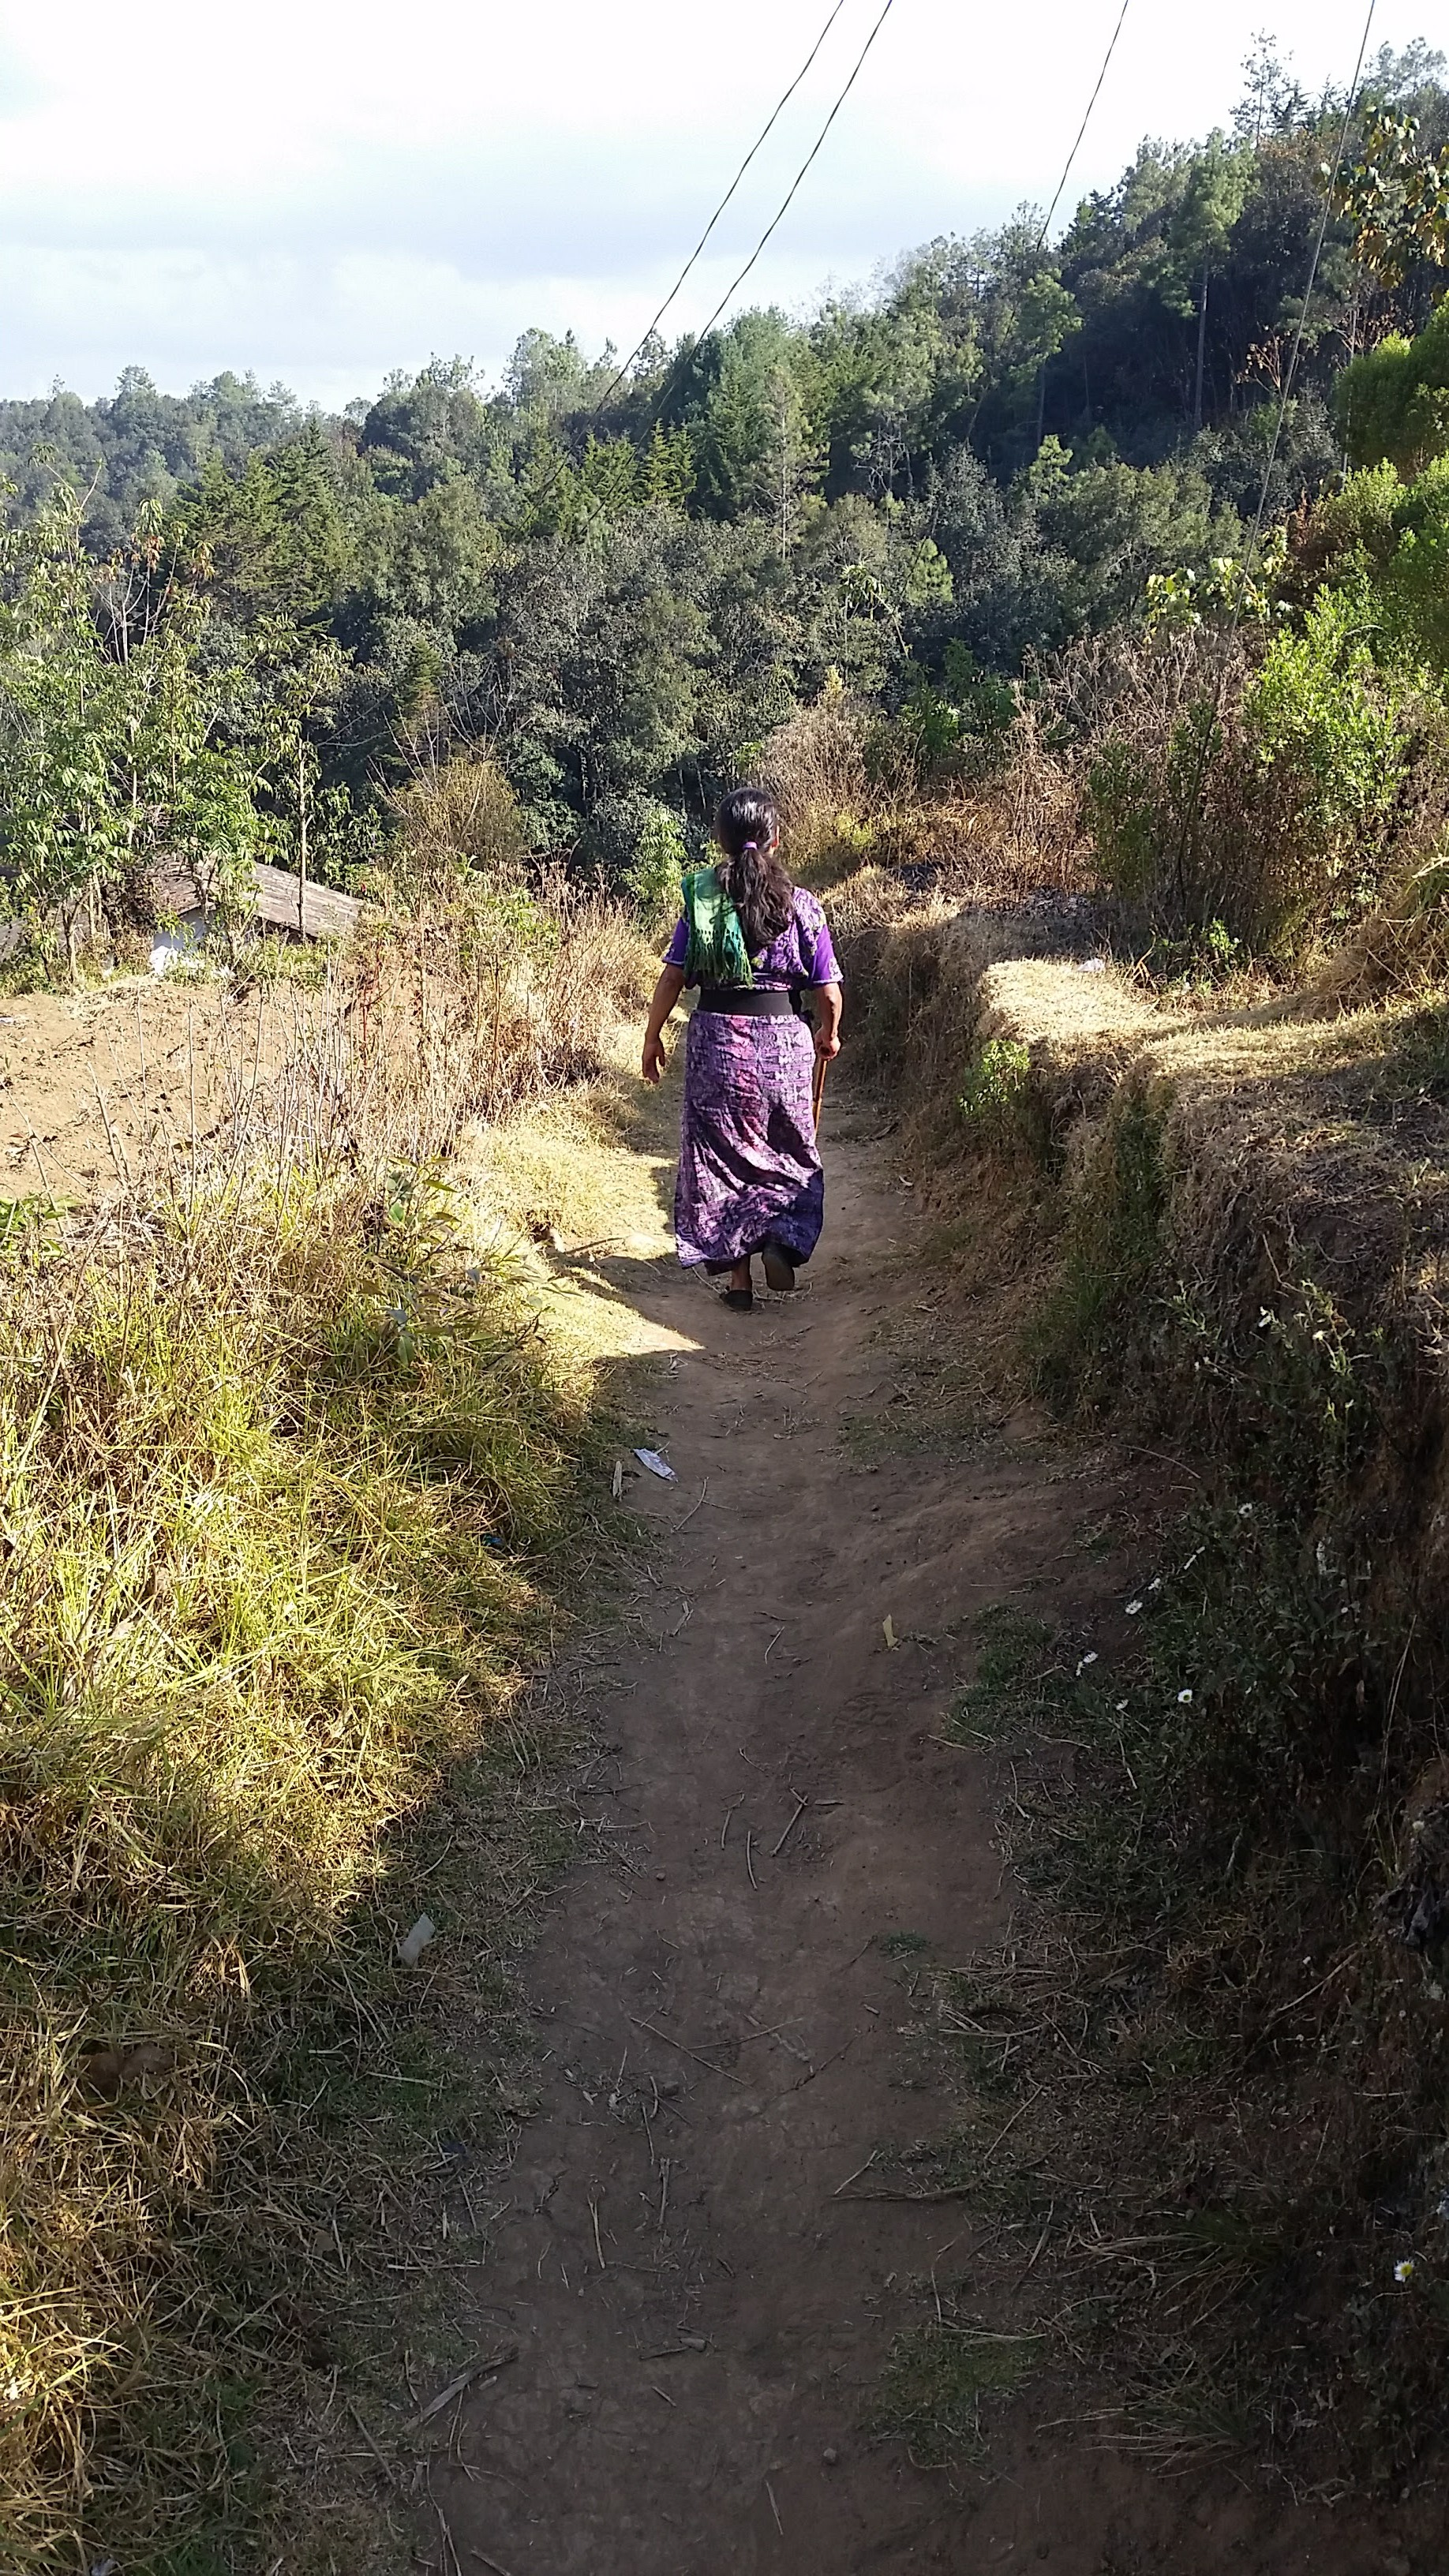 A midwife walking the path she takes to reach her patients in the rural highlands of Guatemala.